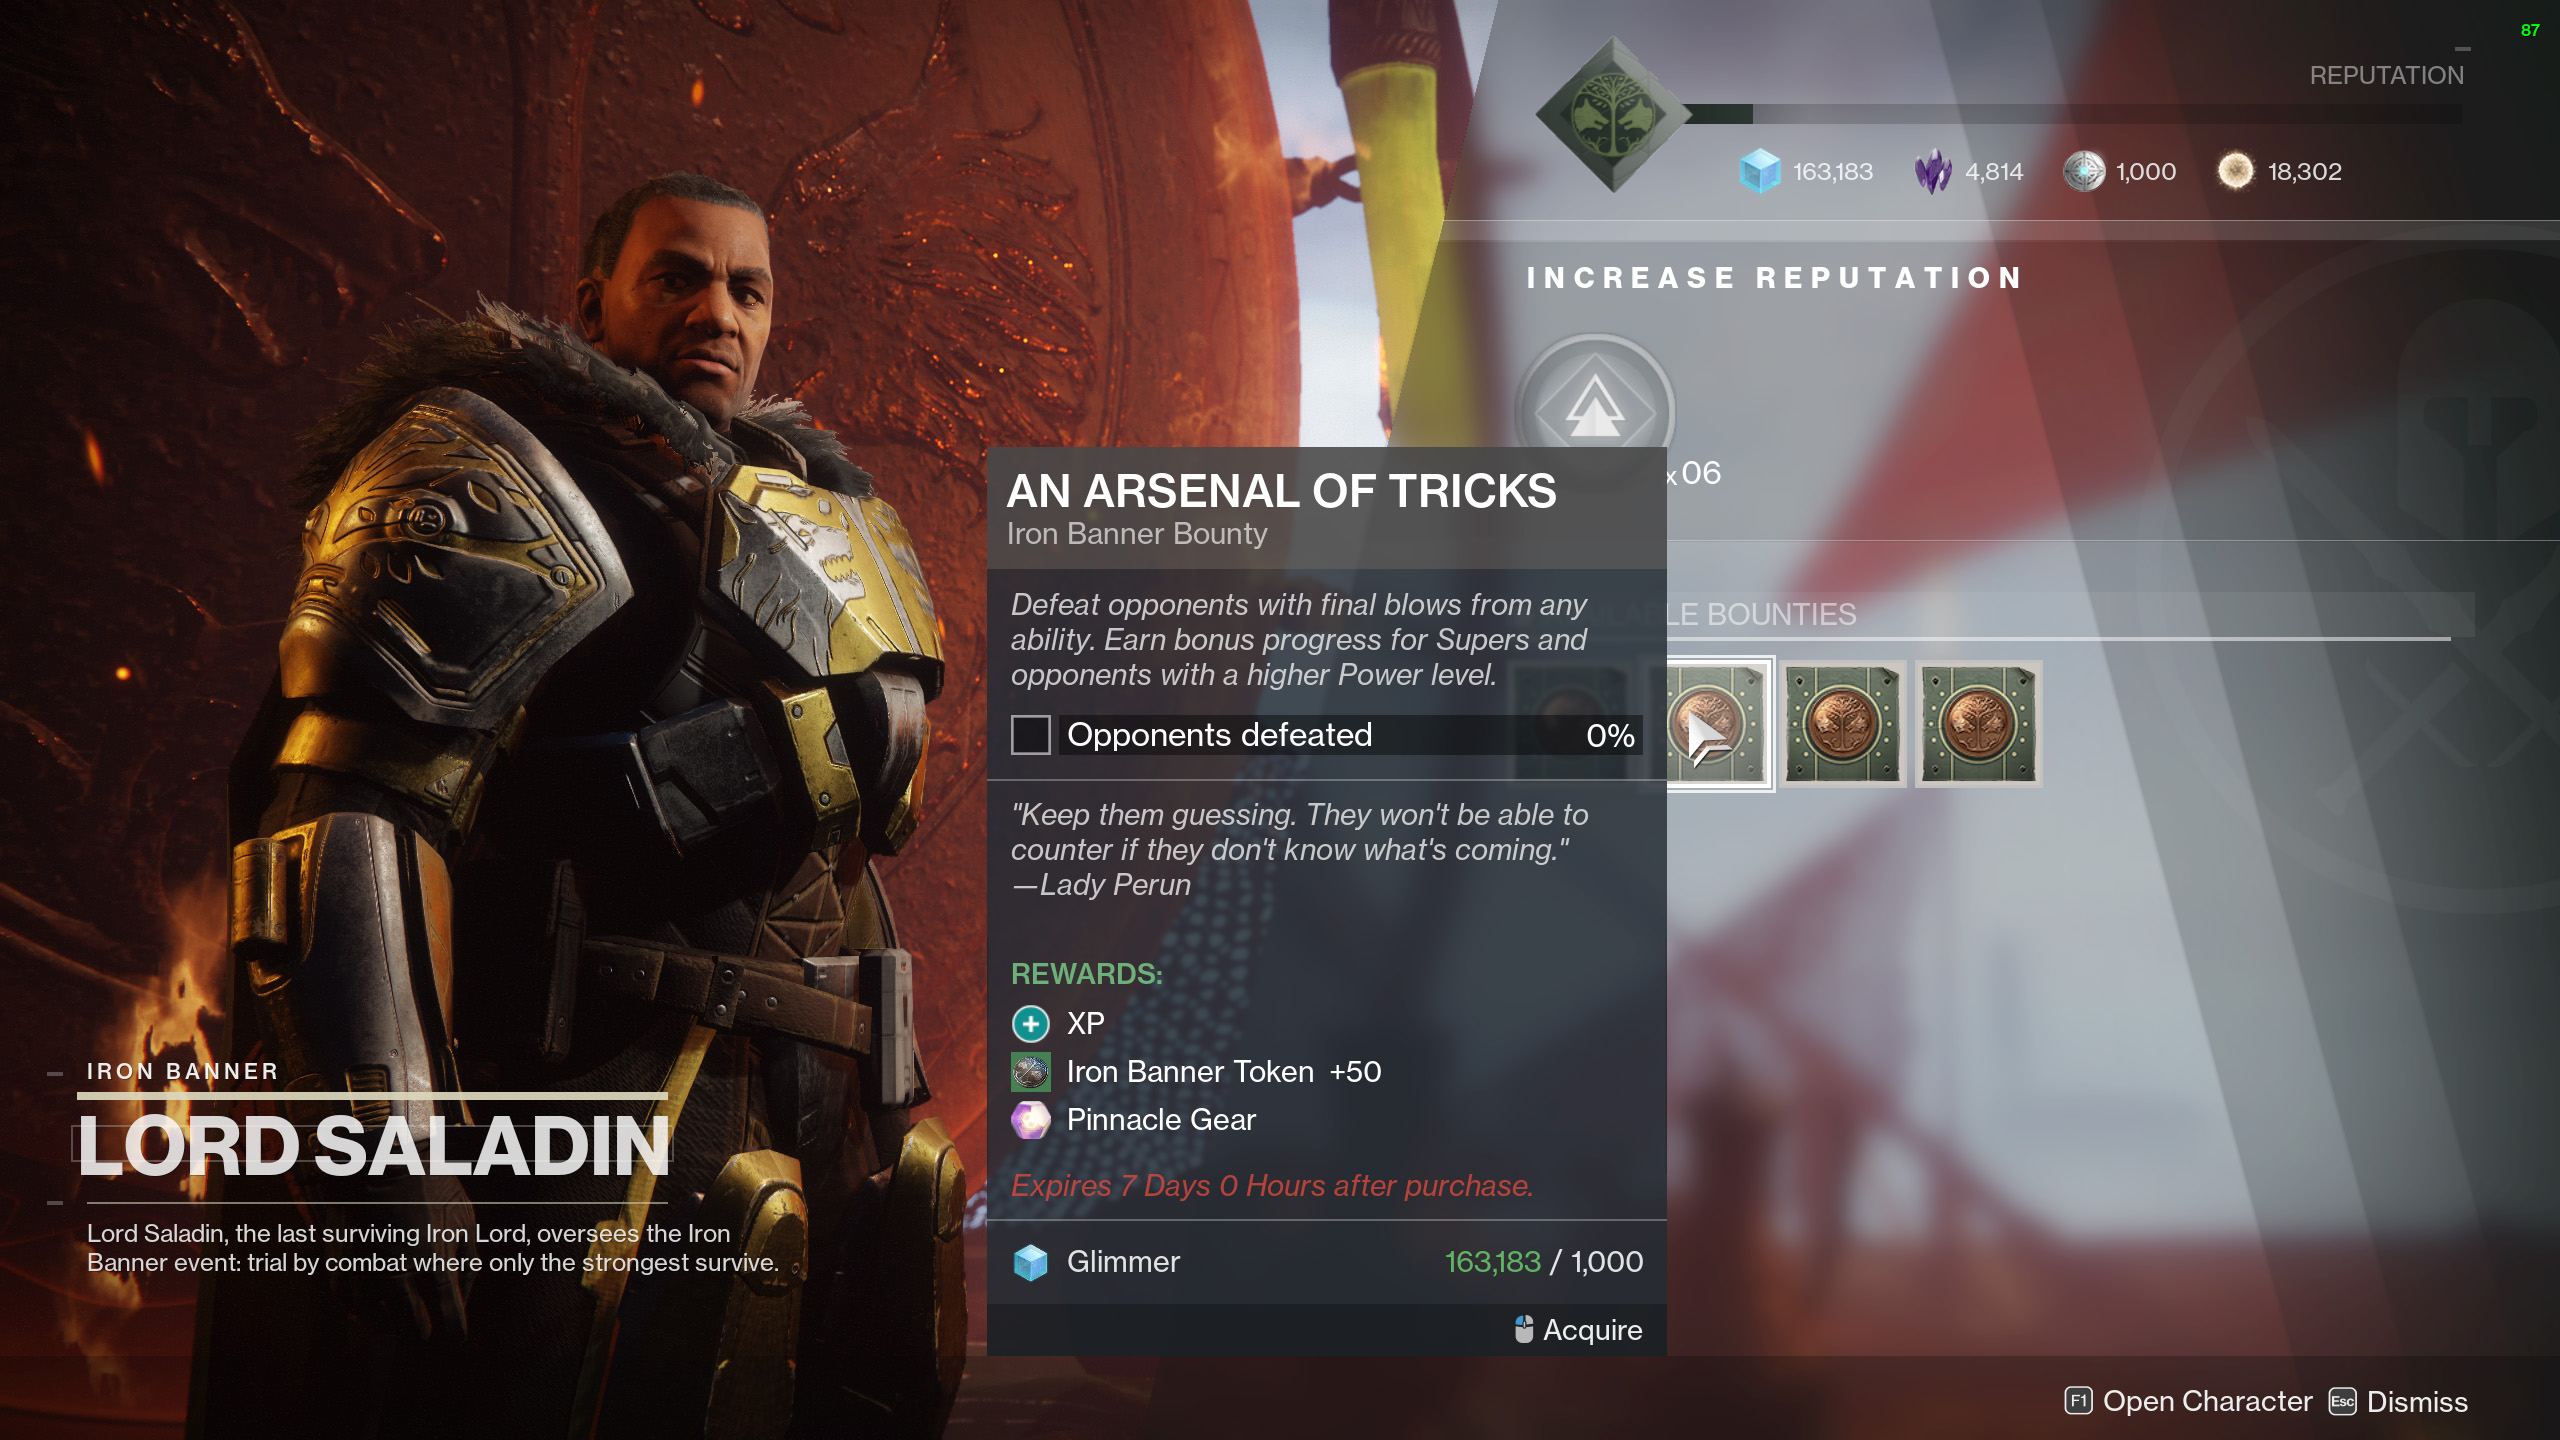 An Arsenal of Tricks Iron Banner Destiny 2